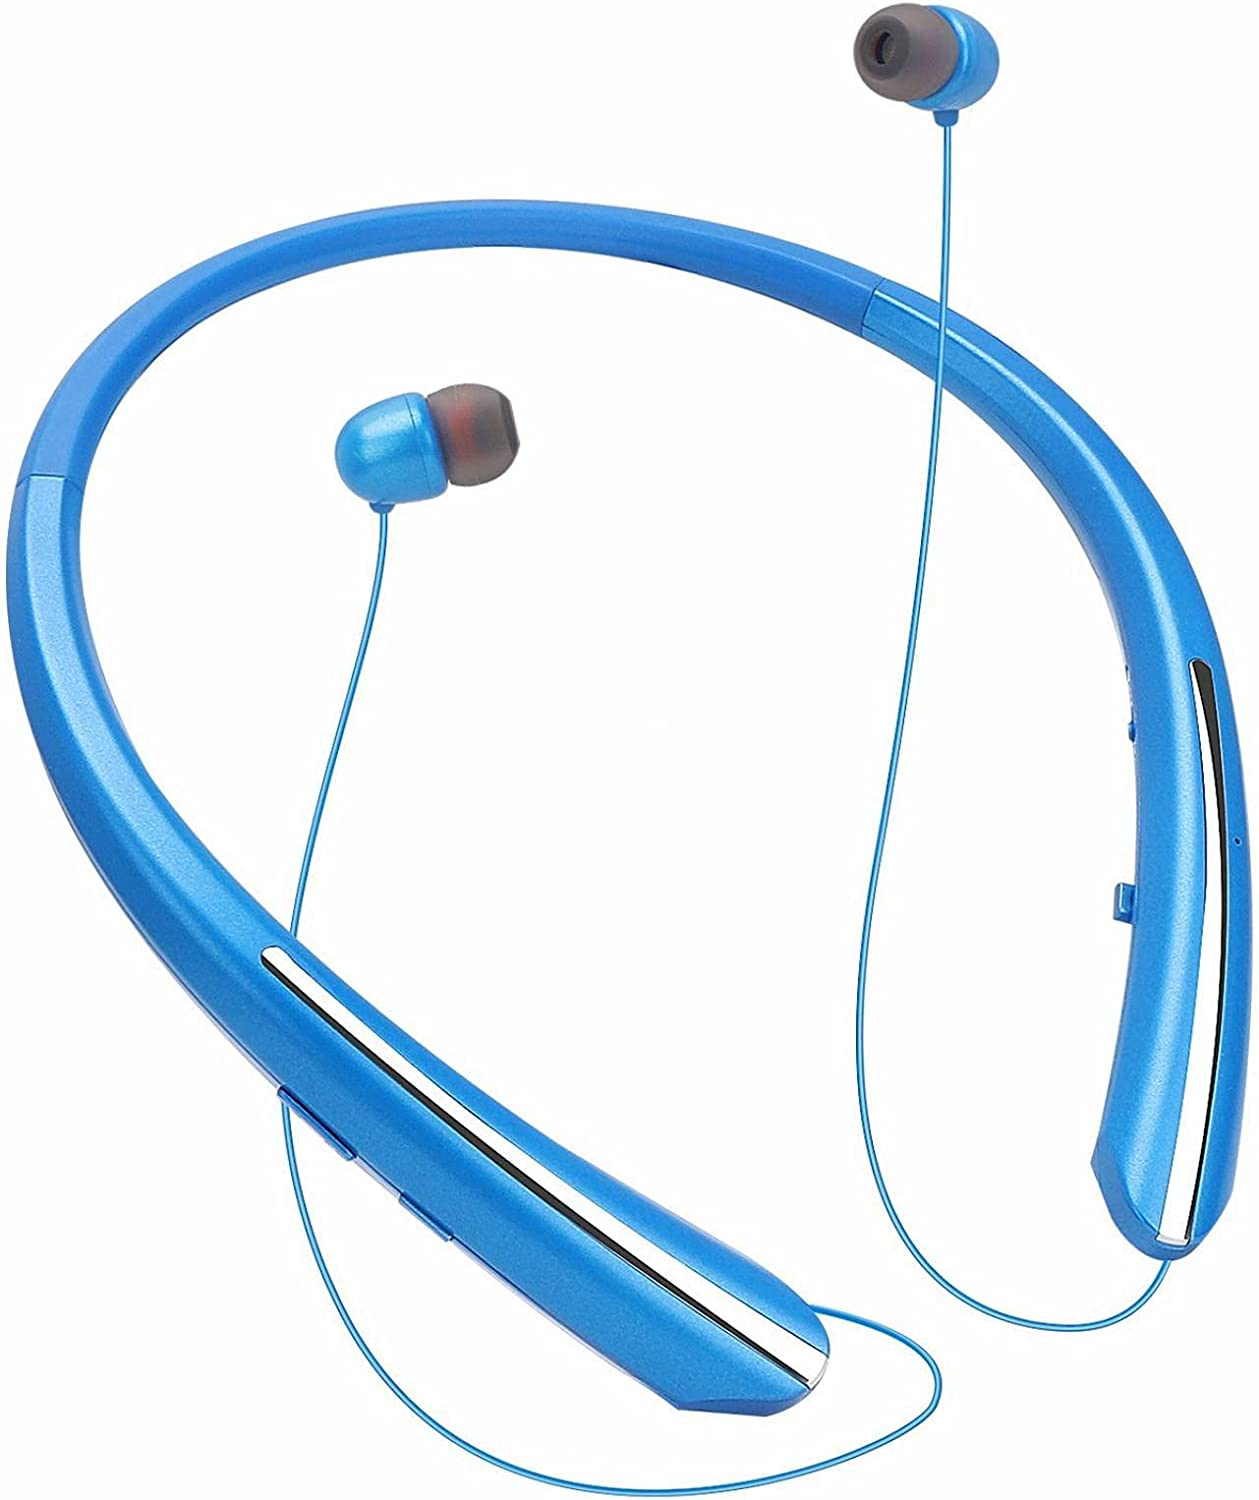 Bluetooth Neckband Headphones, Retractable Earbuds Wireless Headset Sports Noise Cancelling Stereo Earphones with Microphone Compatible with iPhone, Android, Samsung, iPad,PC (Blue)